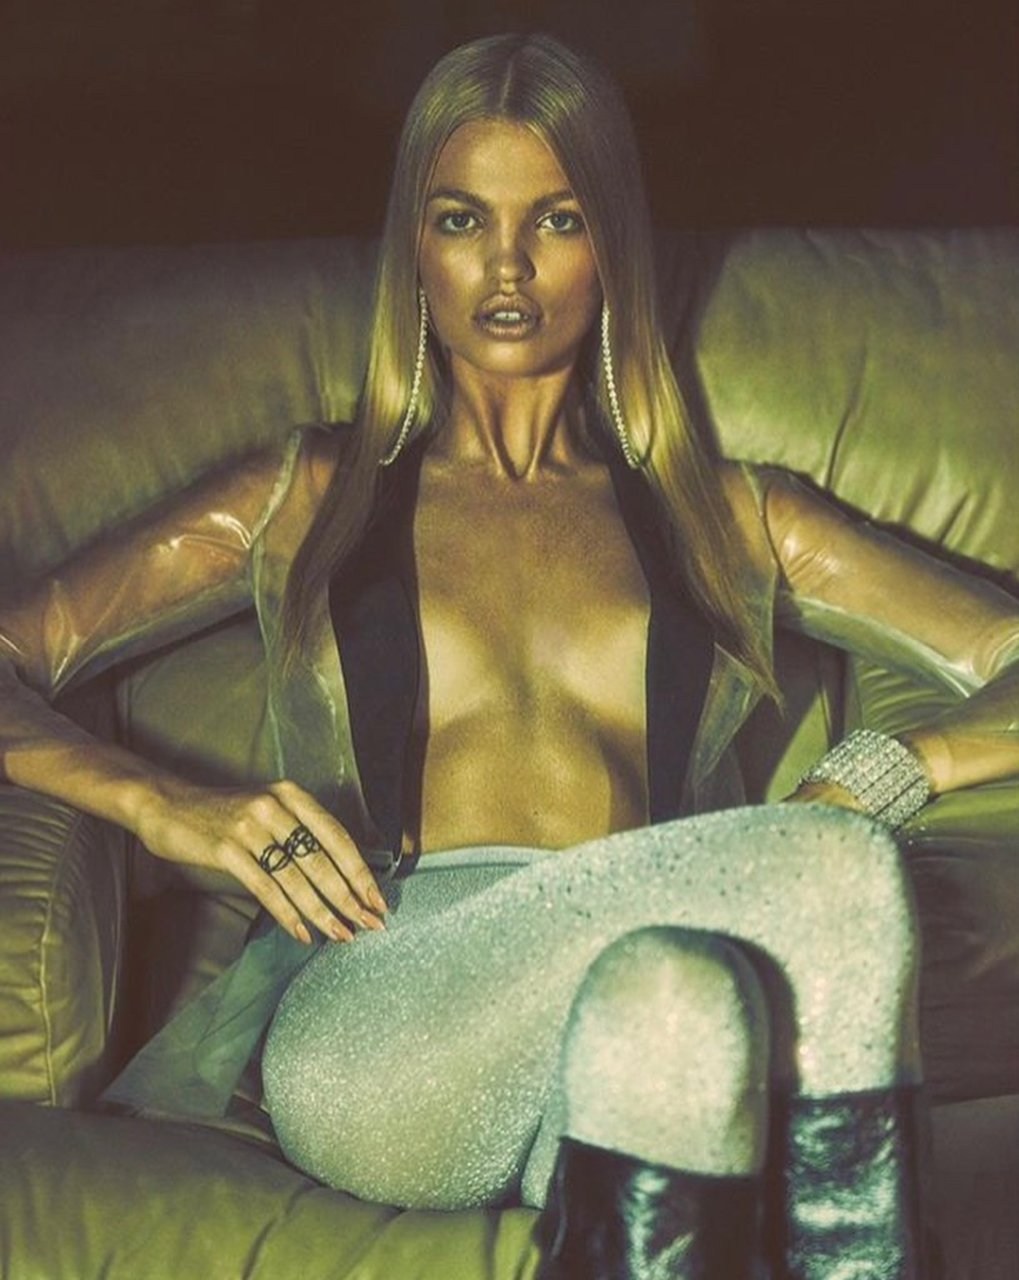 XXX Daphne Groeneveld naked (15 photos), Pussy, Cleavage, Selfie, swimsuit 2017